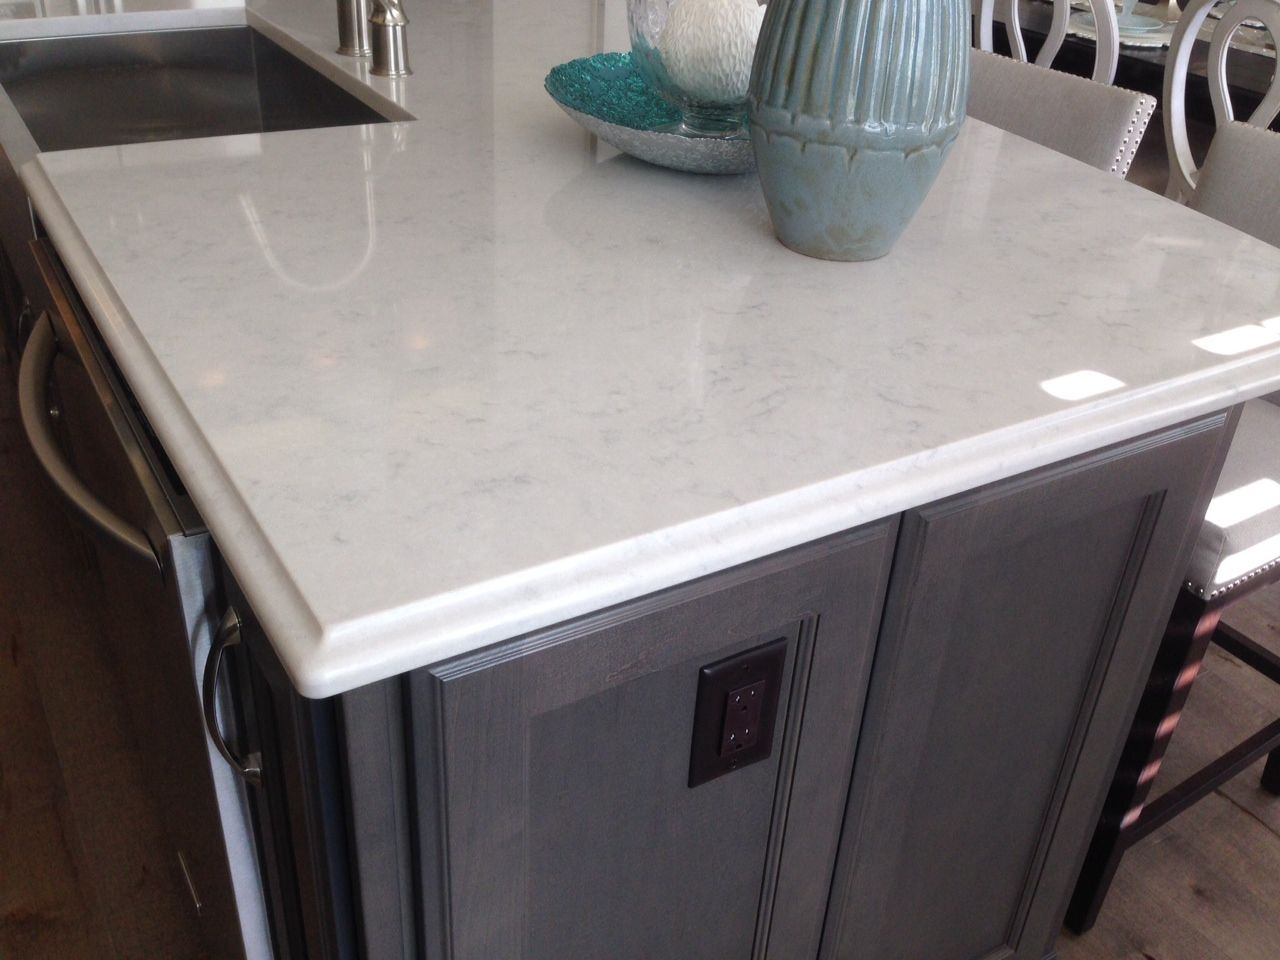 Final Selection For Our Kitchen Counters Master Ensuite Quartz Silestone Lagoon With A